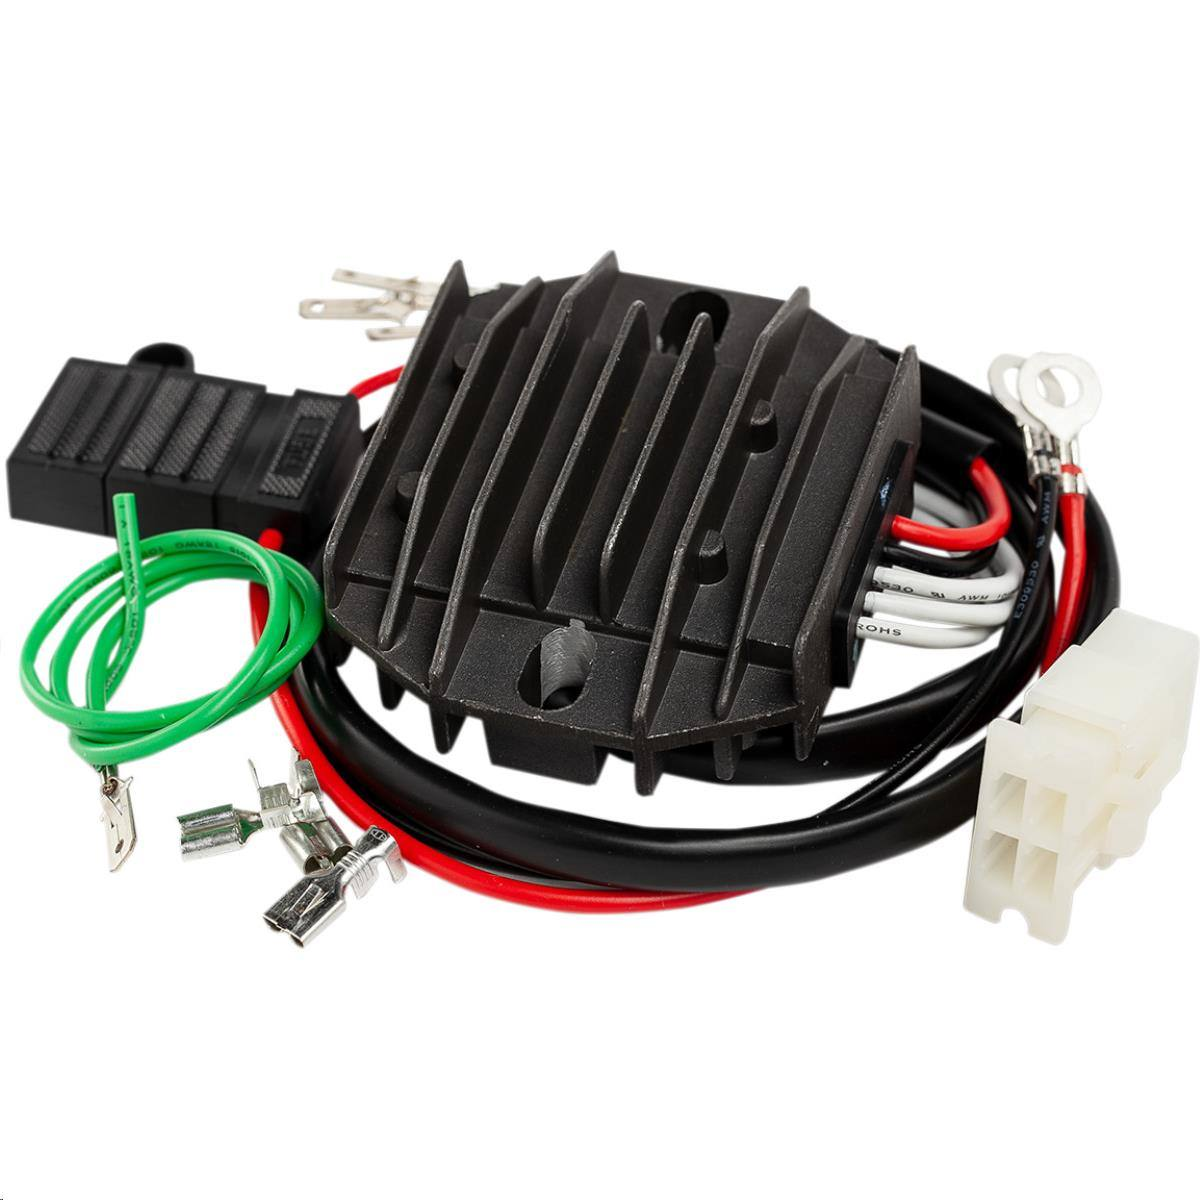 hight resolution of lithium ion battery compatible rectifier regulator for sale in appleton wi ecklund motorsports 920 734 7134